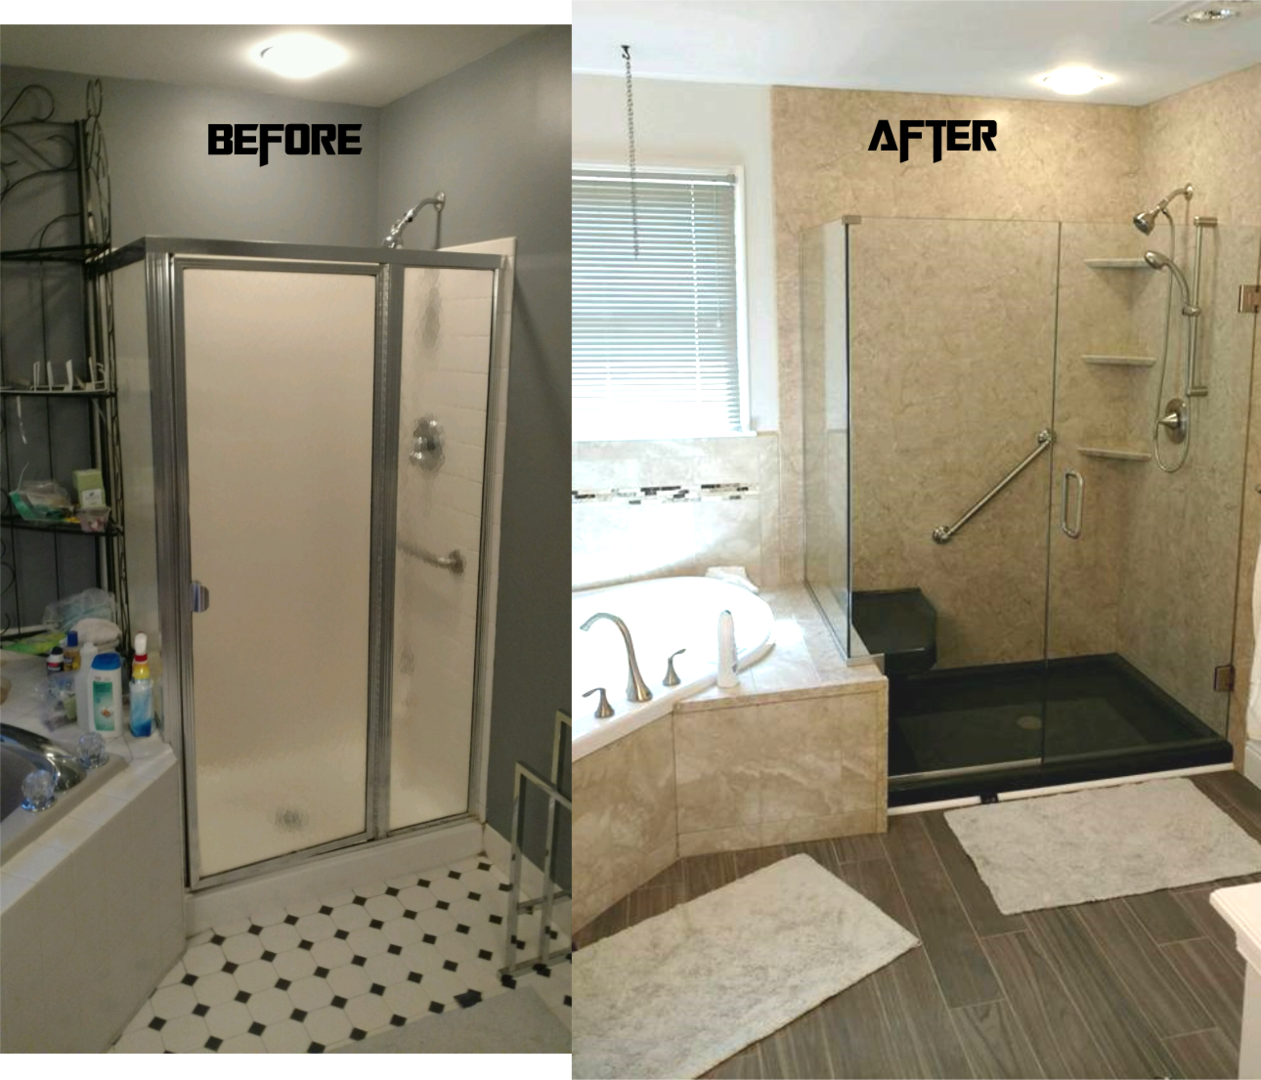 total bath transformations bathtub shower replacement we offer various upgrades including curved shower rods glass doors brushed nickel or oil rubbed bronze fixtures tile and more